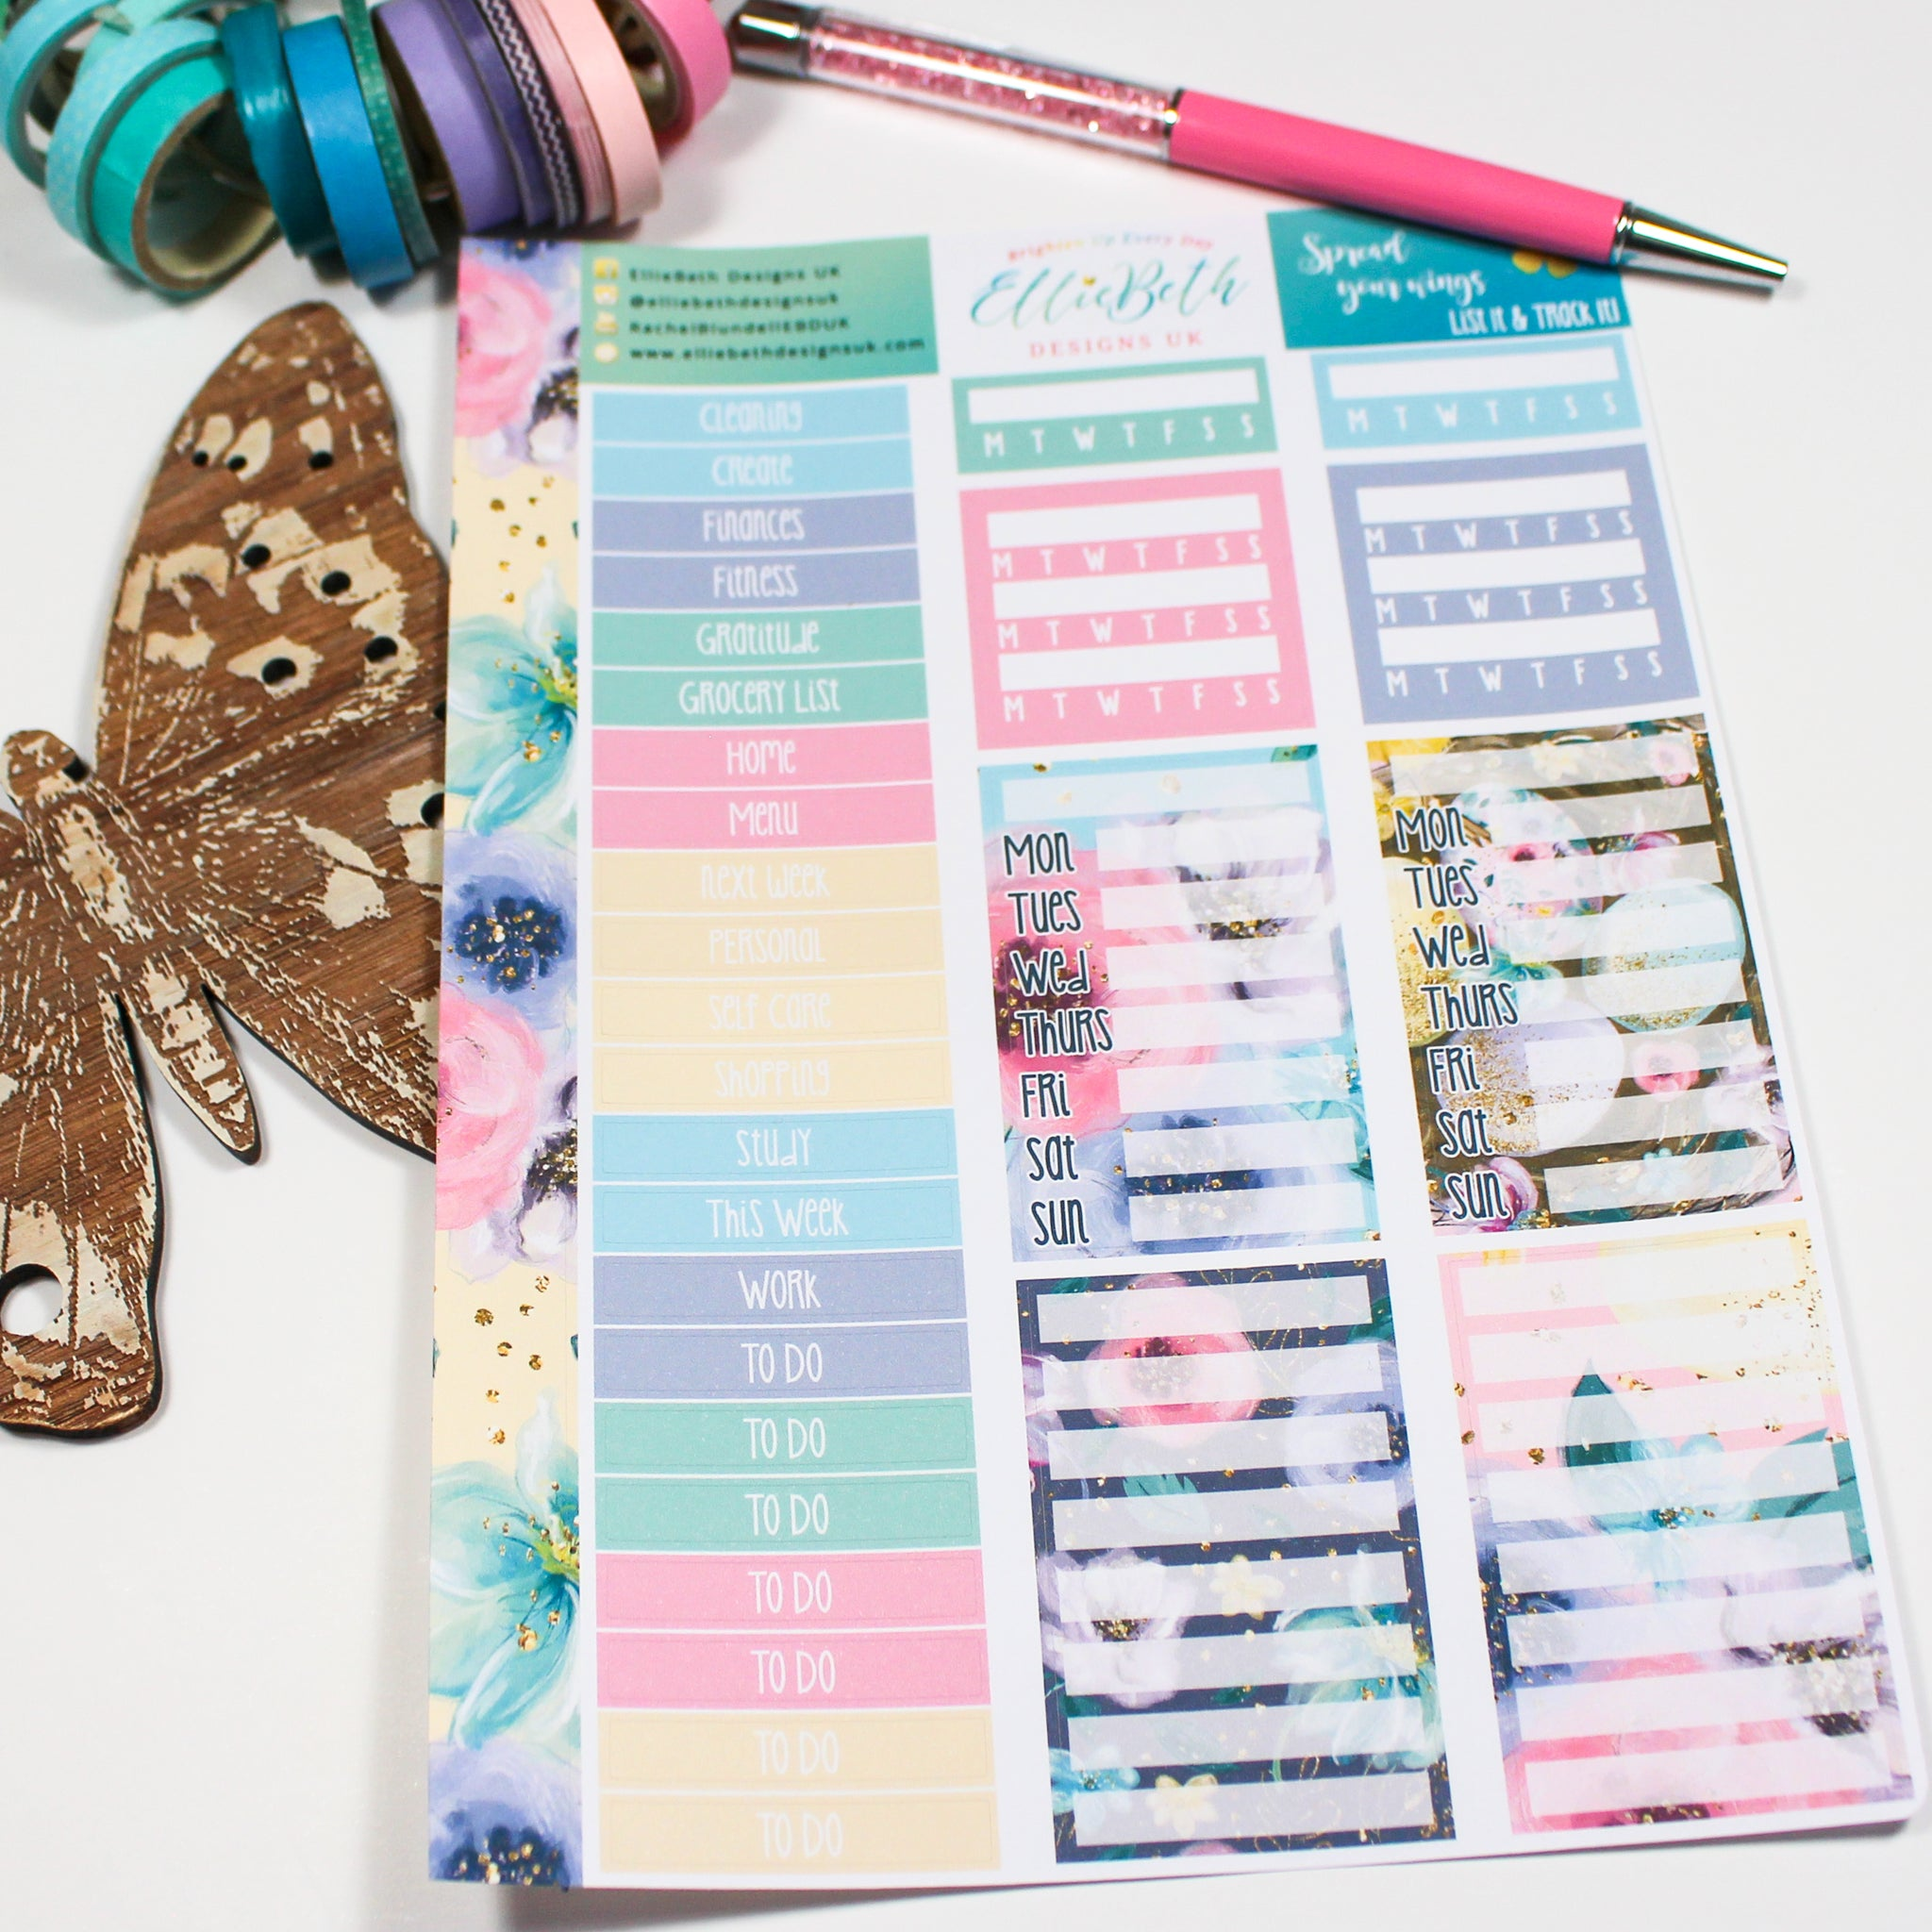 'Spread Your Wings' - List It & Track It -  A5 binder ready planner stickers